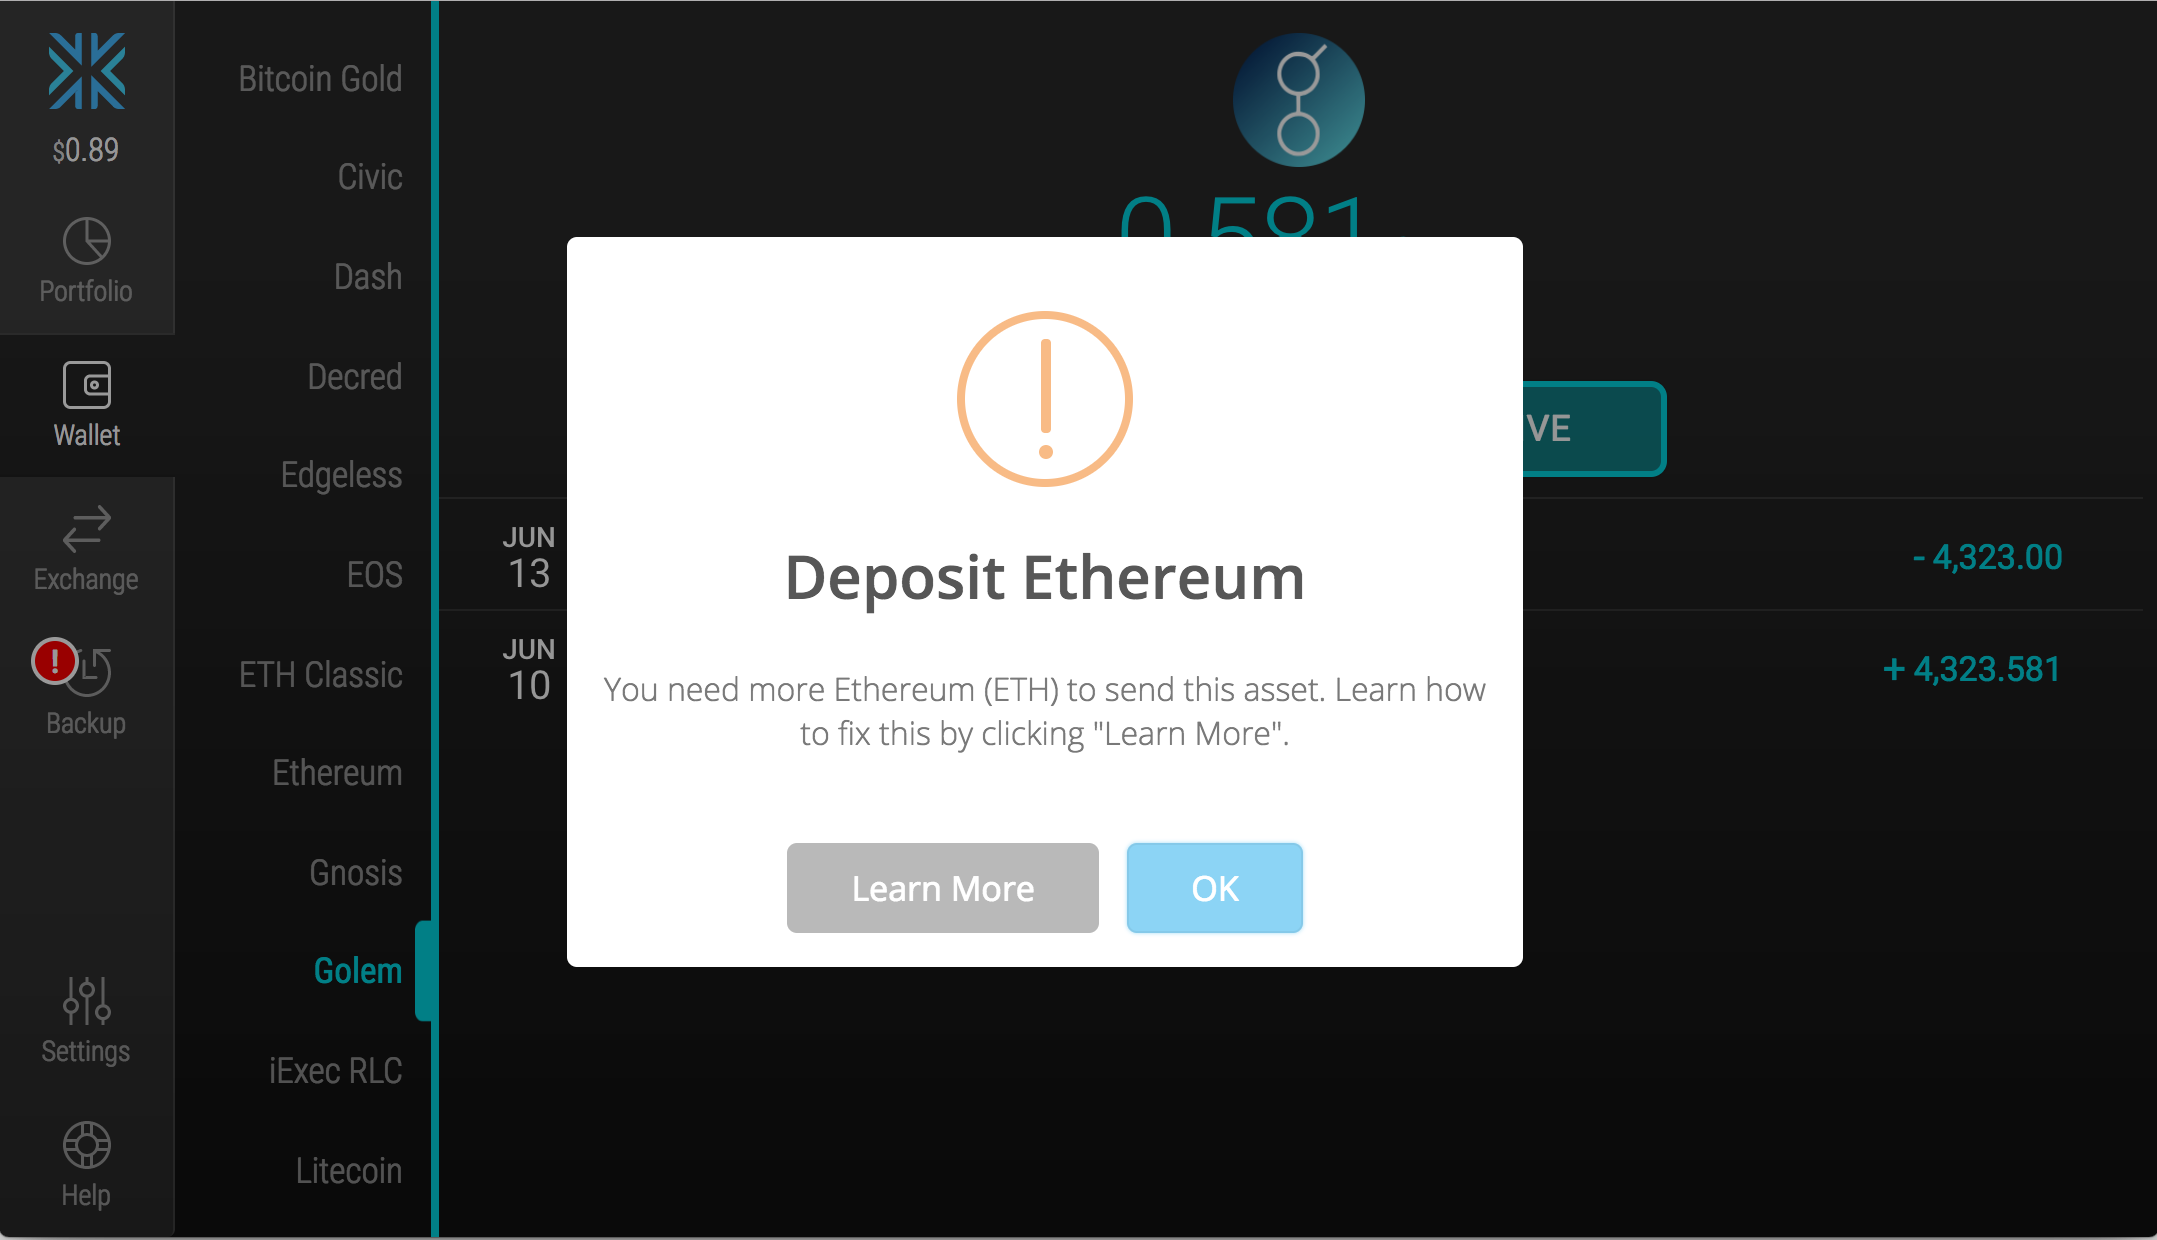 To send or exchange an Ethereum-powered (ERC20) asset, Exodus requires you  to have a minimum of 0.005 Ethereum (ETH) in your Exodus wallet.